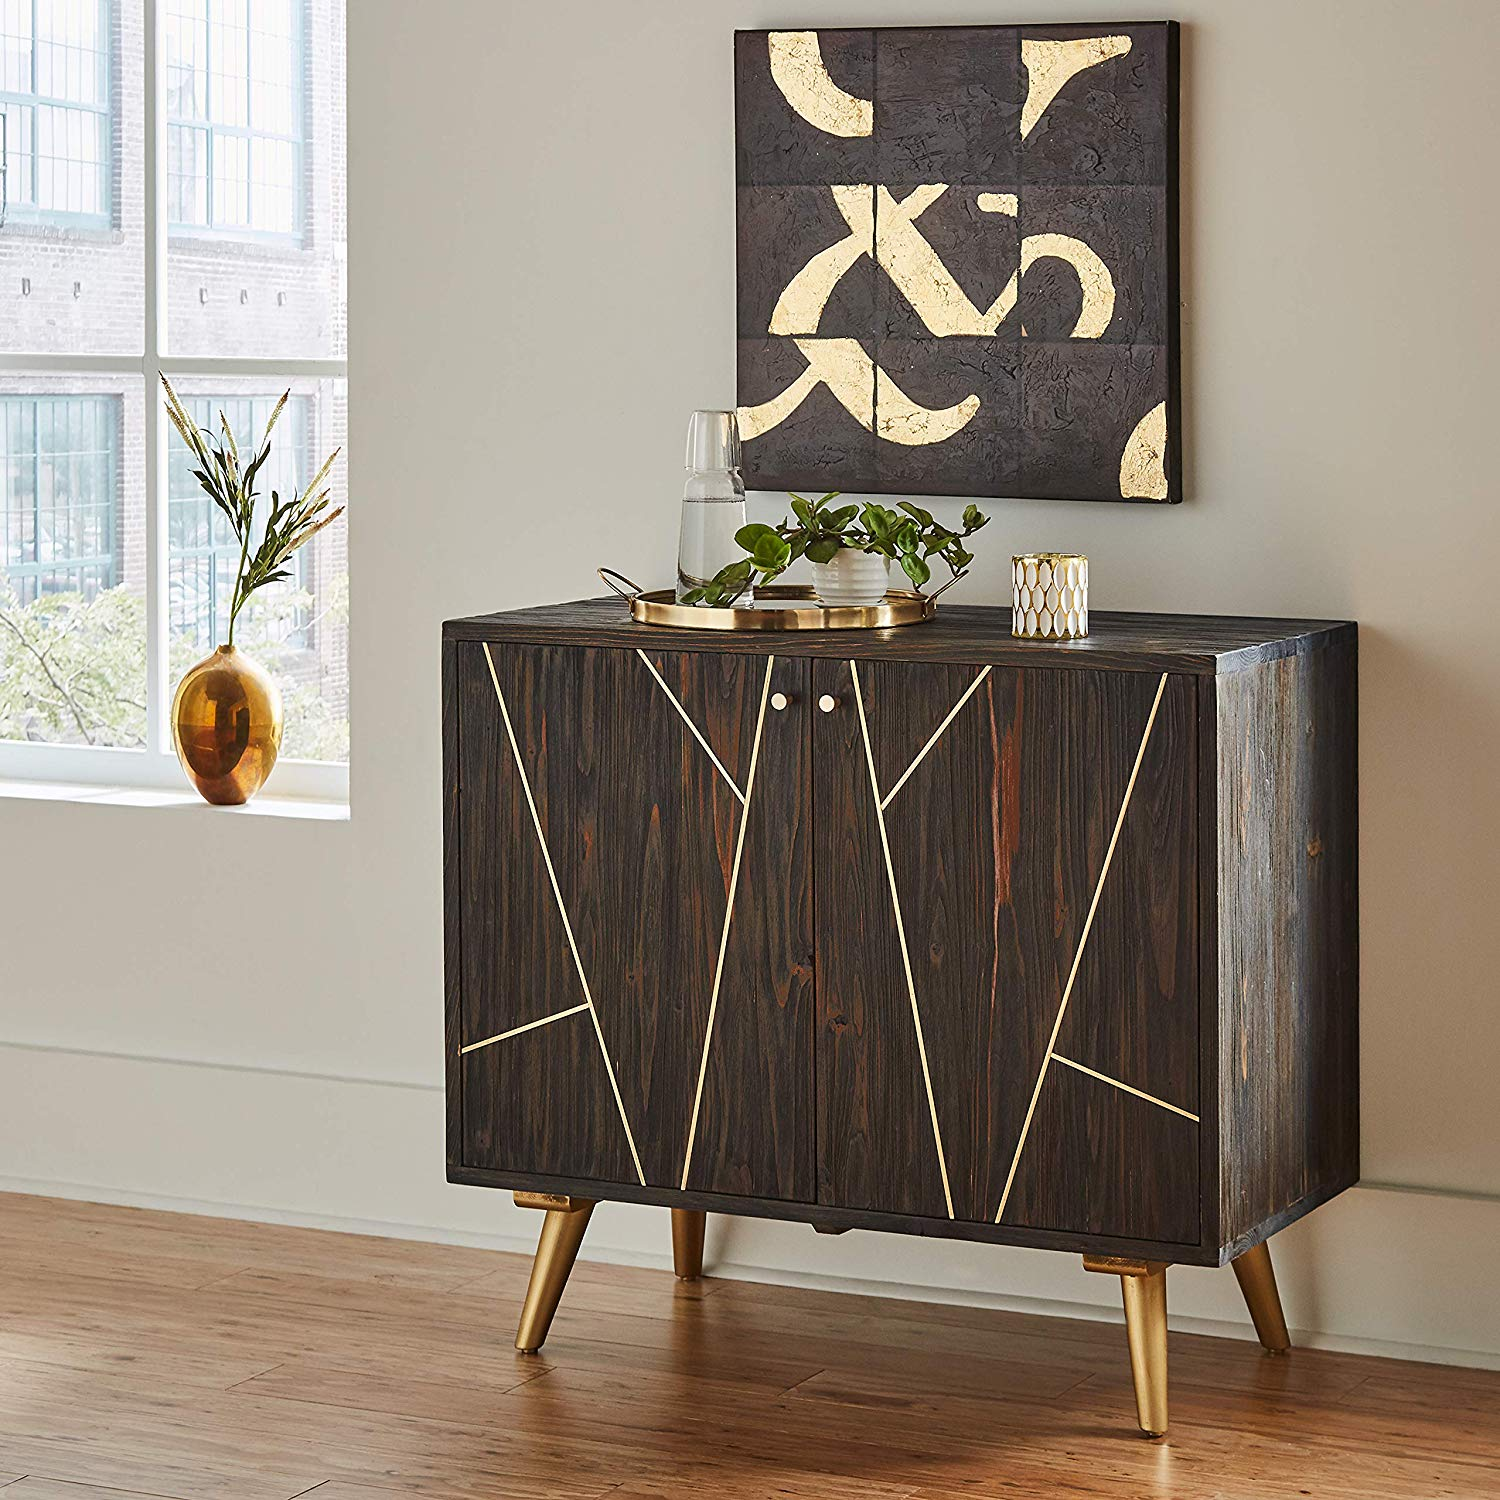 distressed-entryway-table-with-modern-gold-geometric-accents